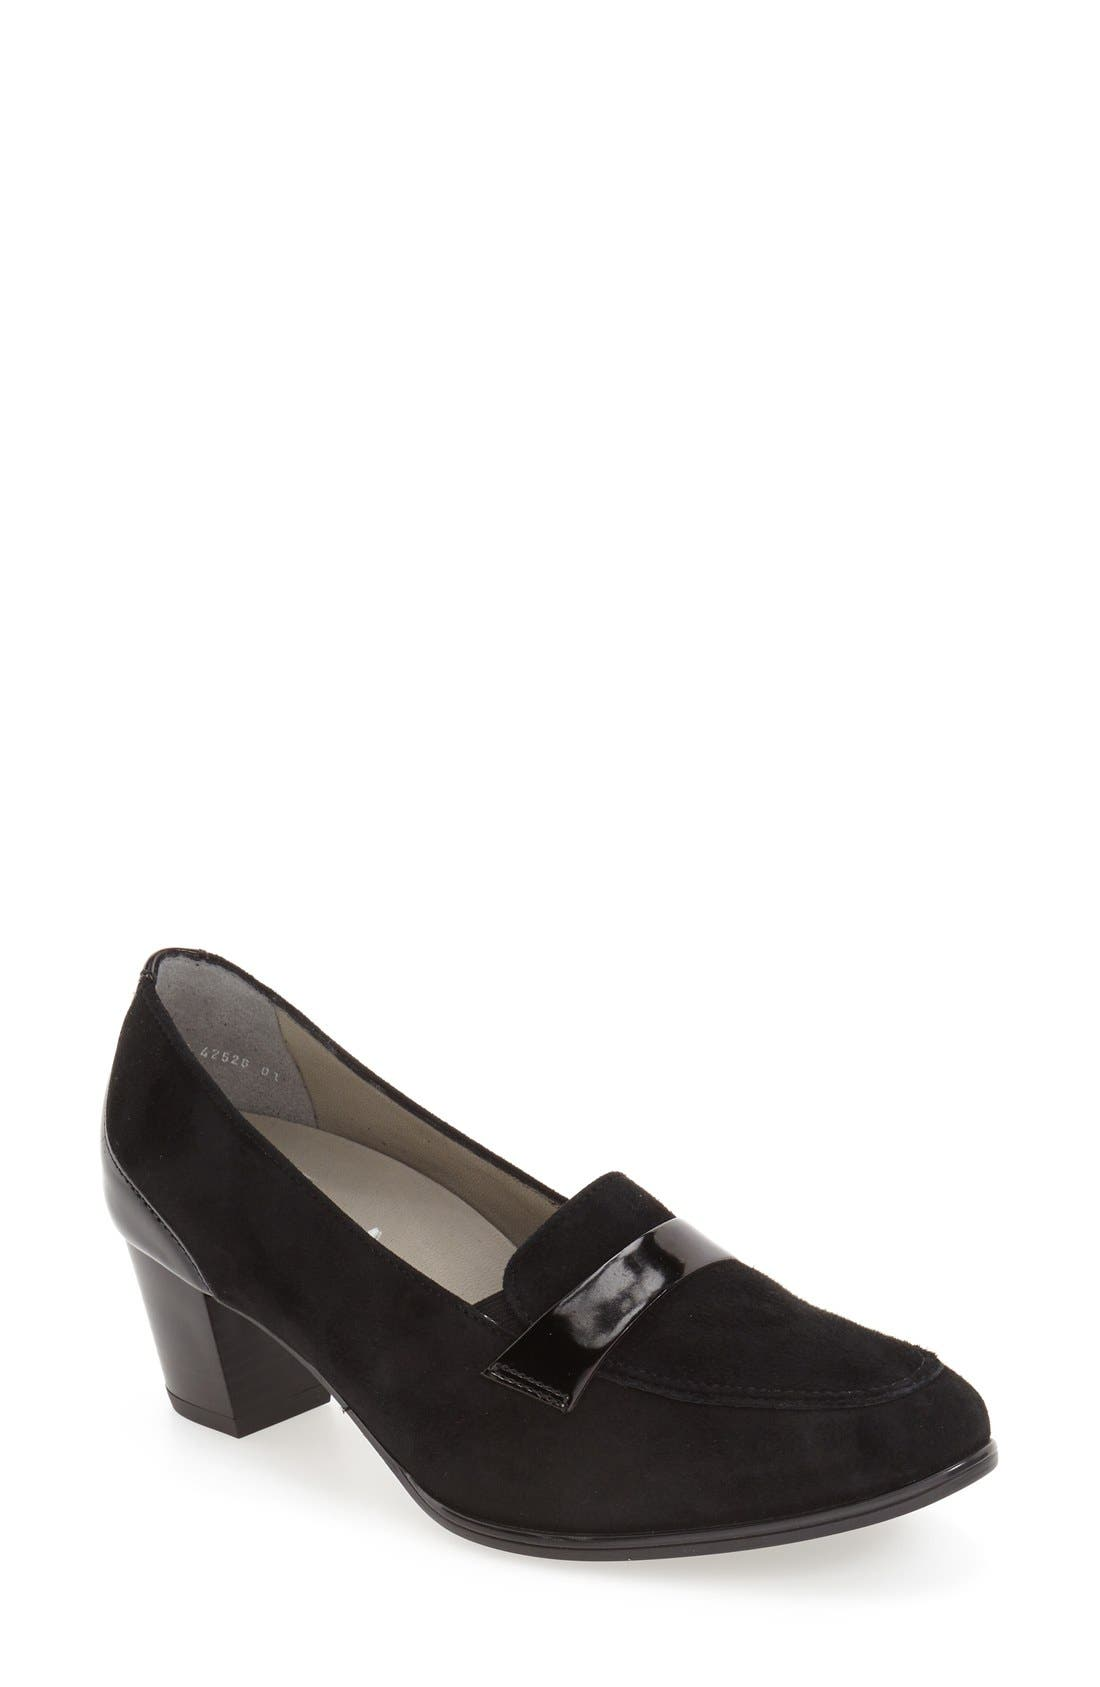 ARA 'MarryAnn' Loafer Pump